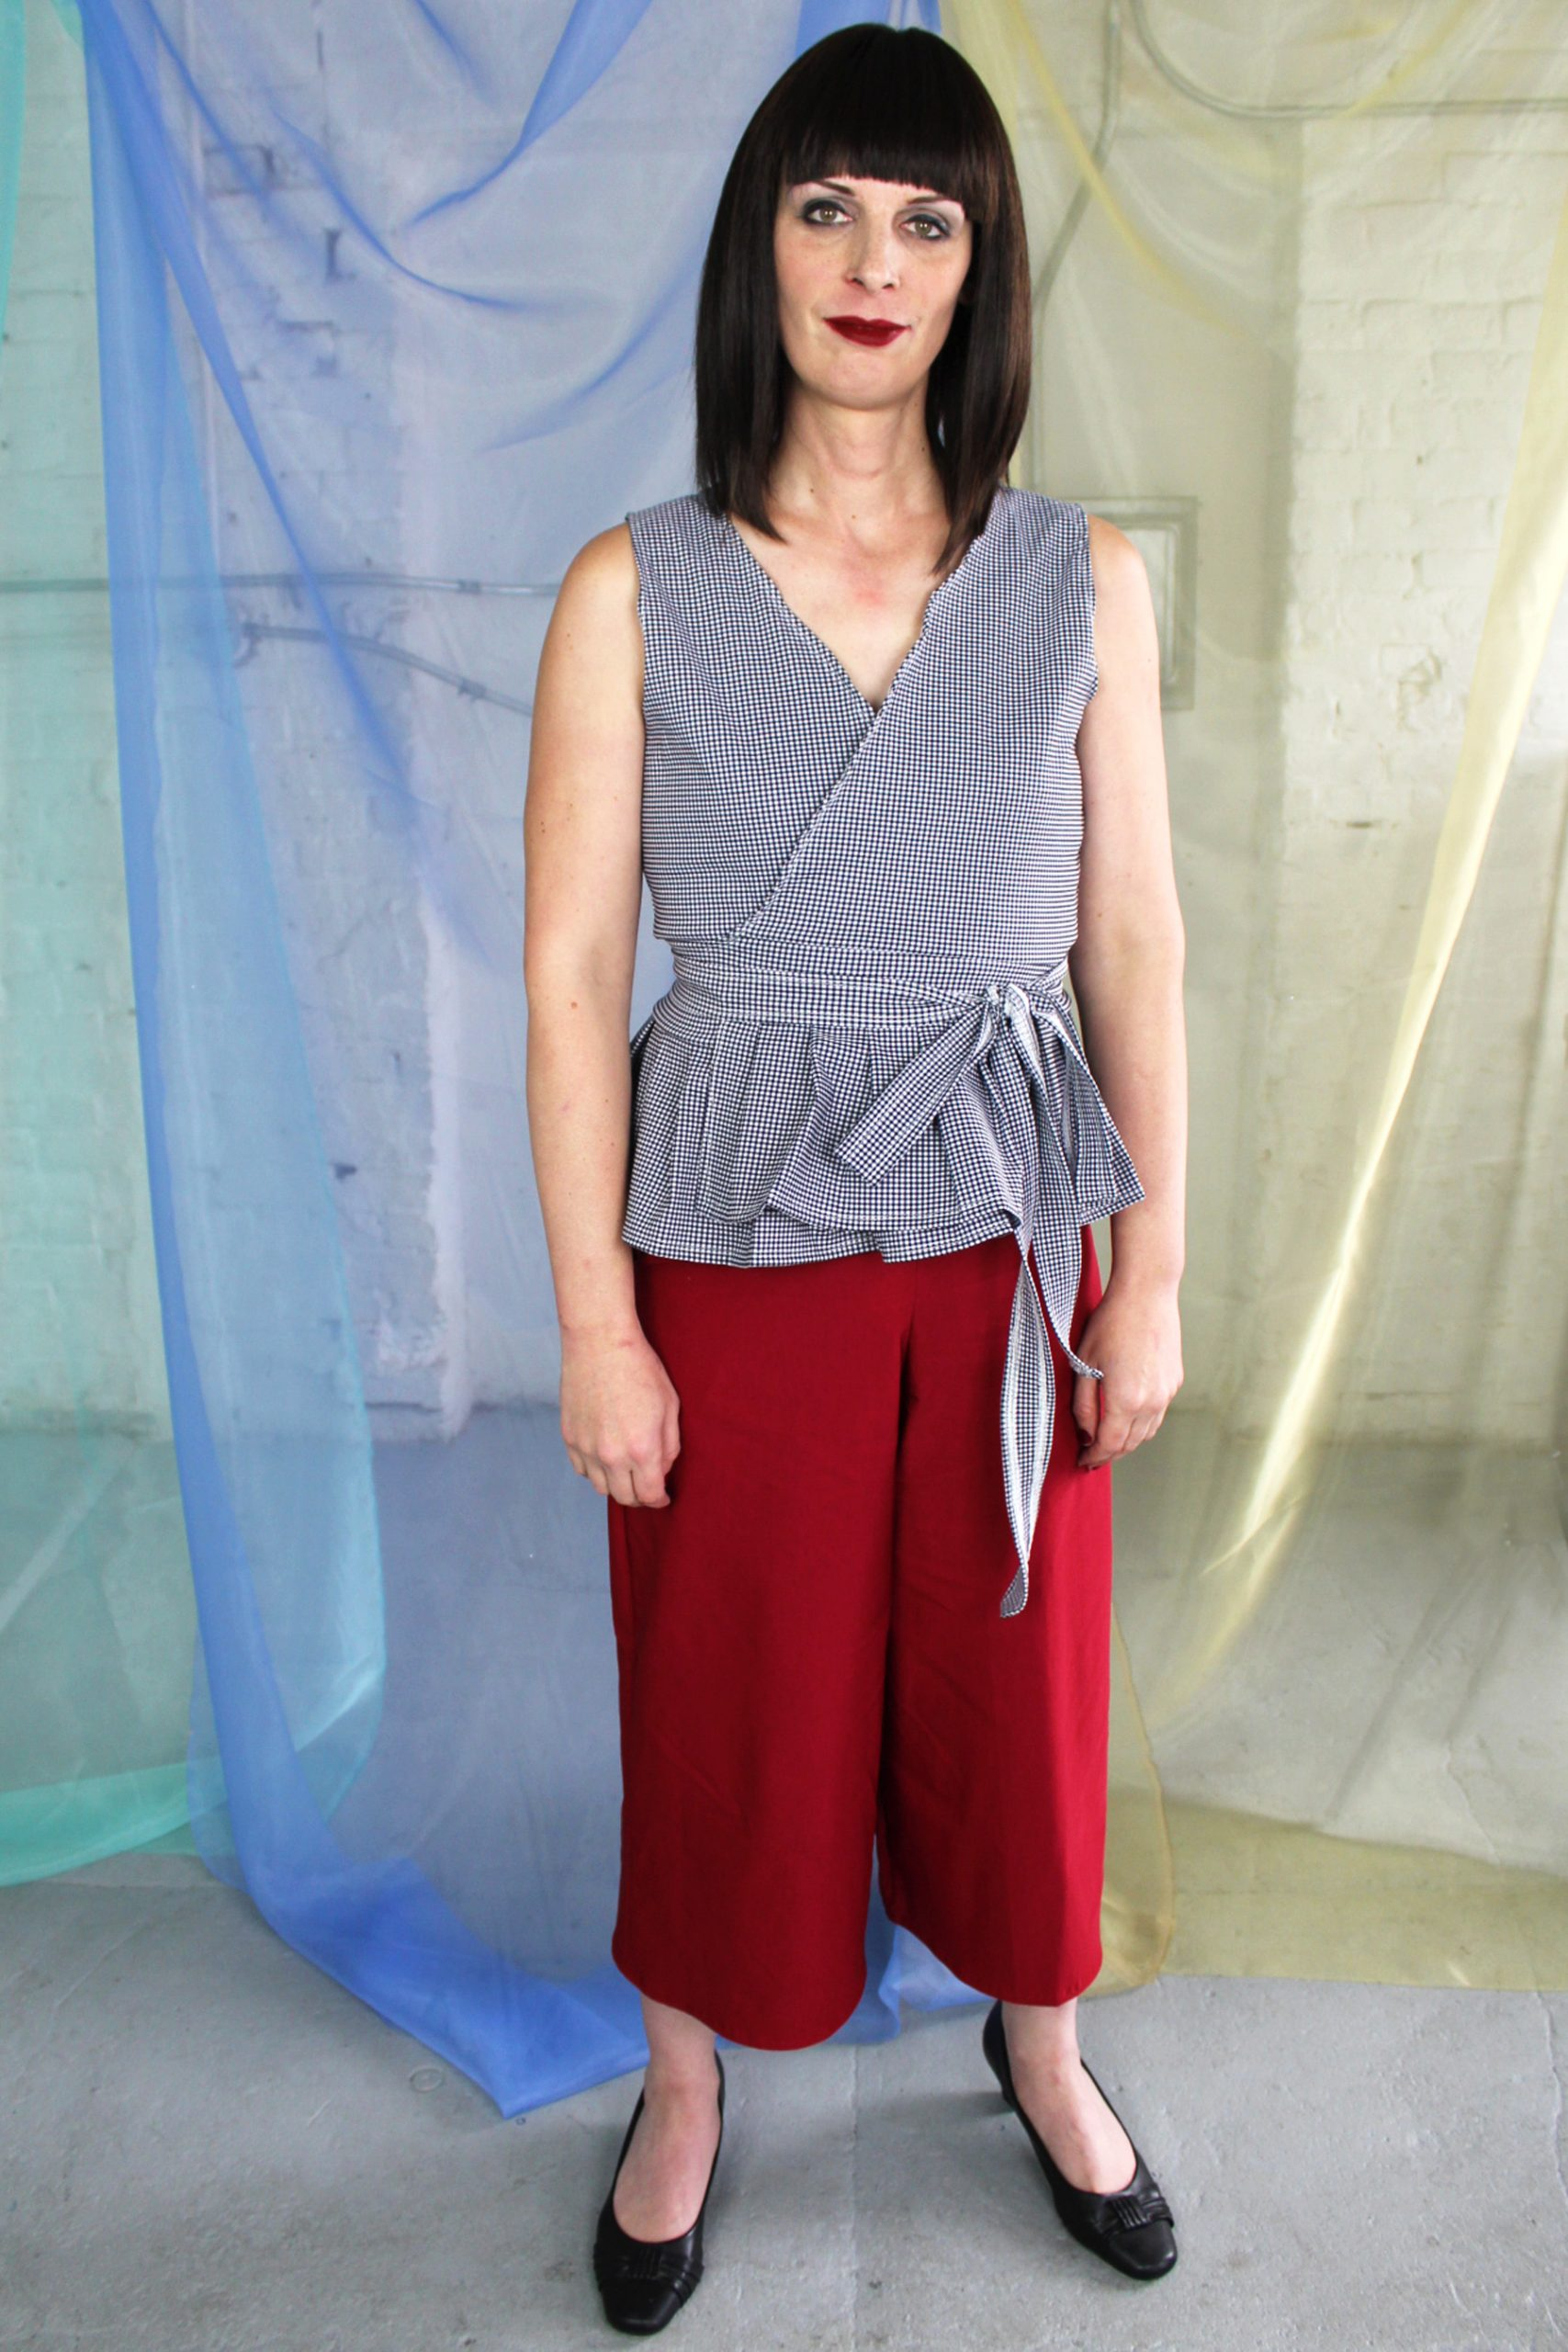 Straight size white brunette tall trans model in maroon red capri pants with pockets and black + white gingham check wrap top